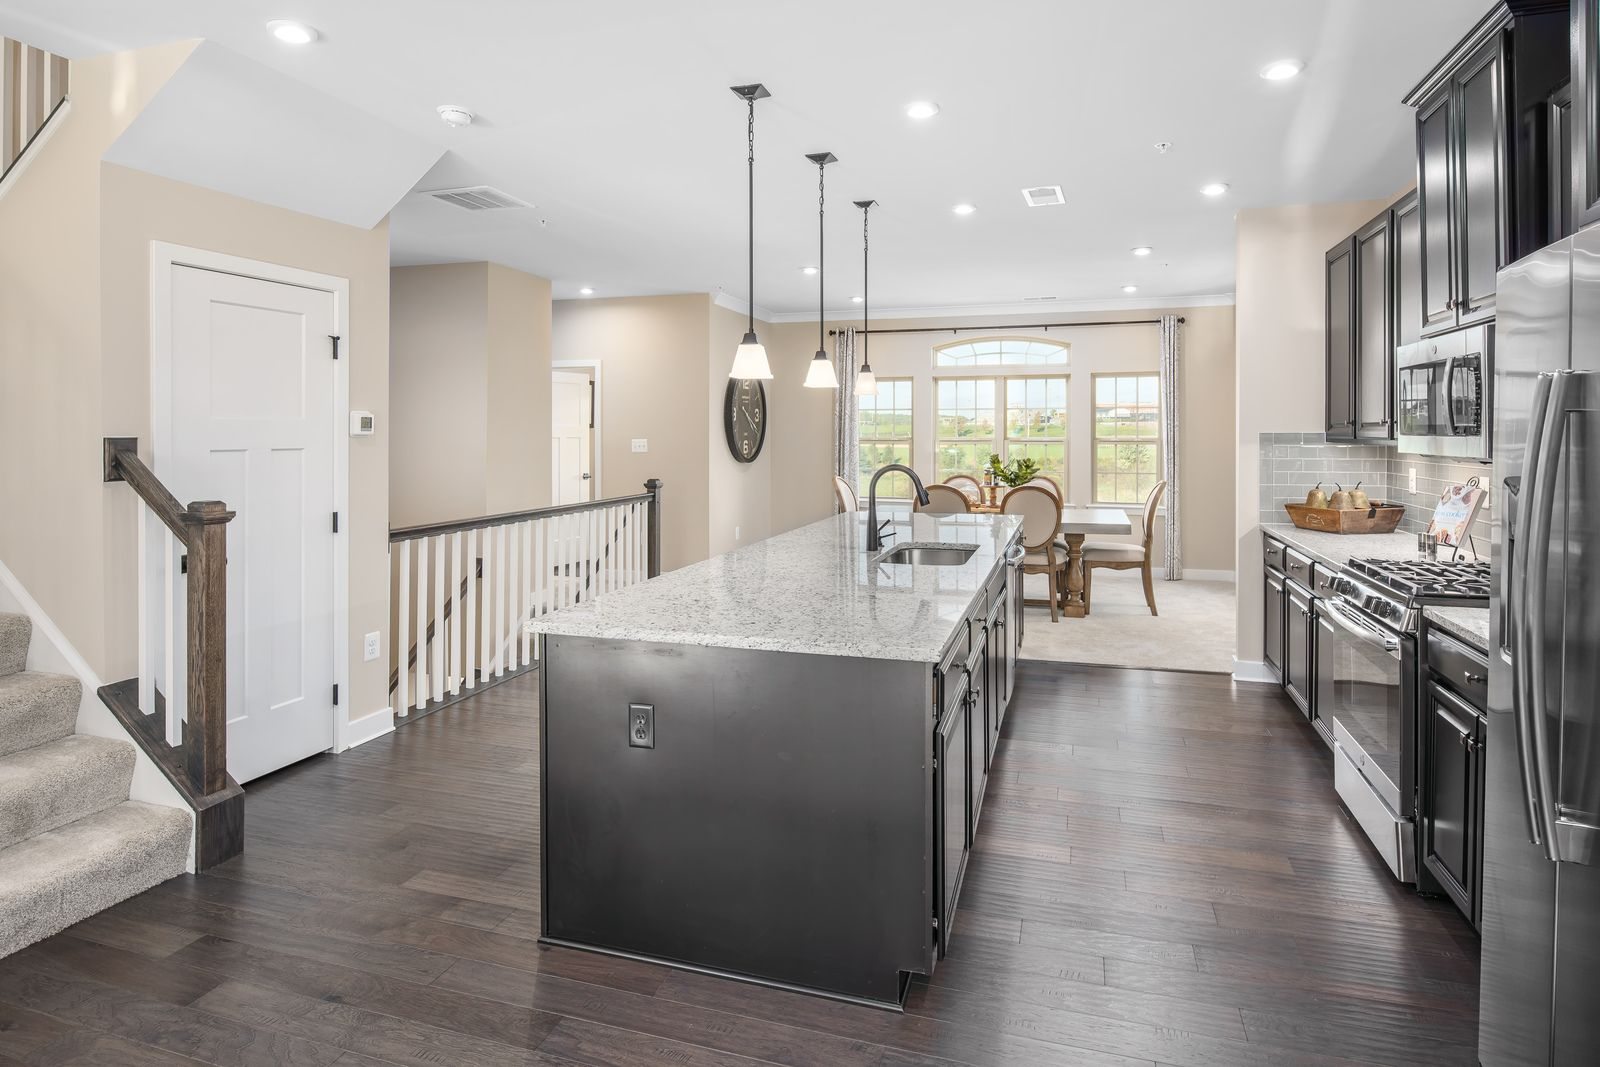 Kitchen-in-Picasso-at-Oakdale Village Garage Townhome Condominiums-in-Ijamsville